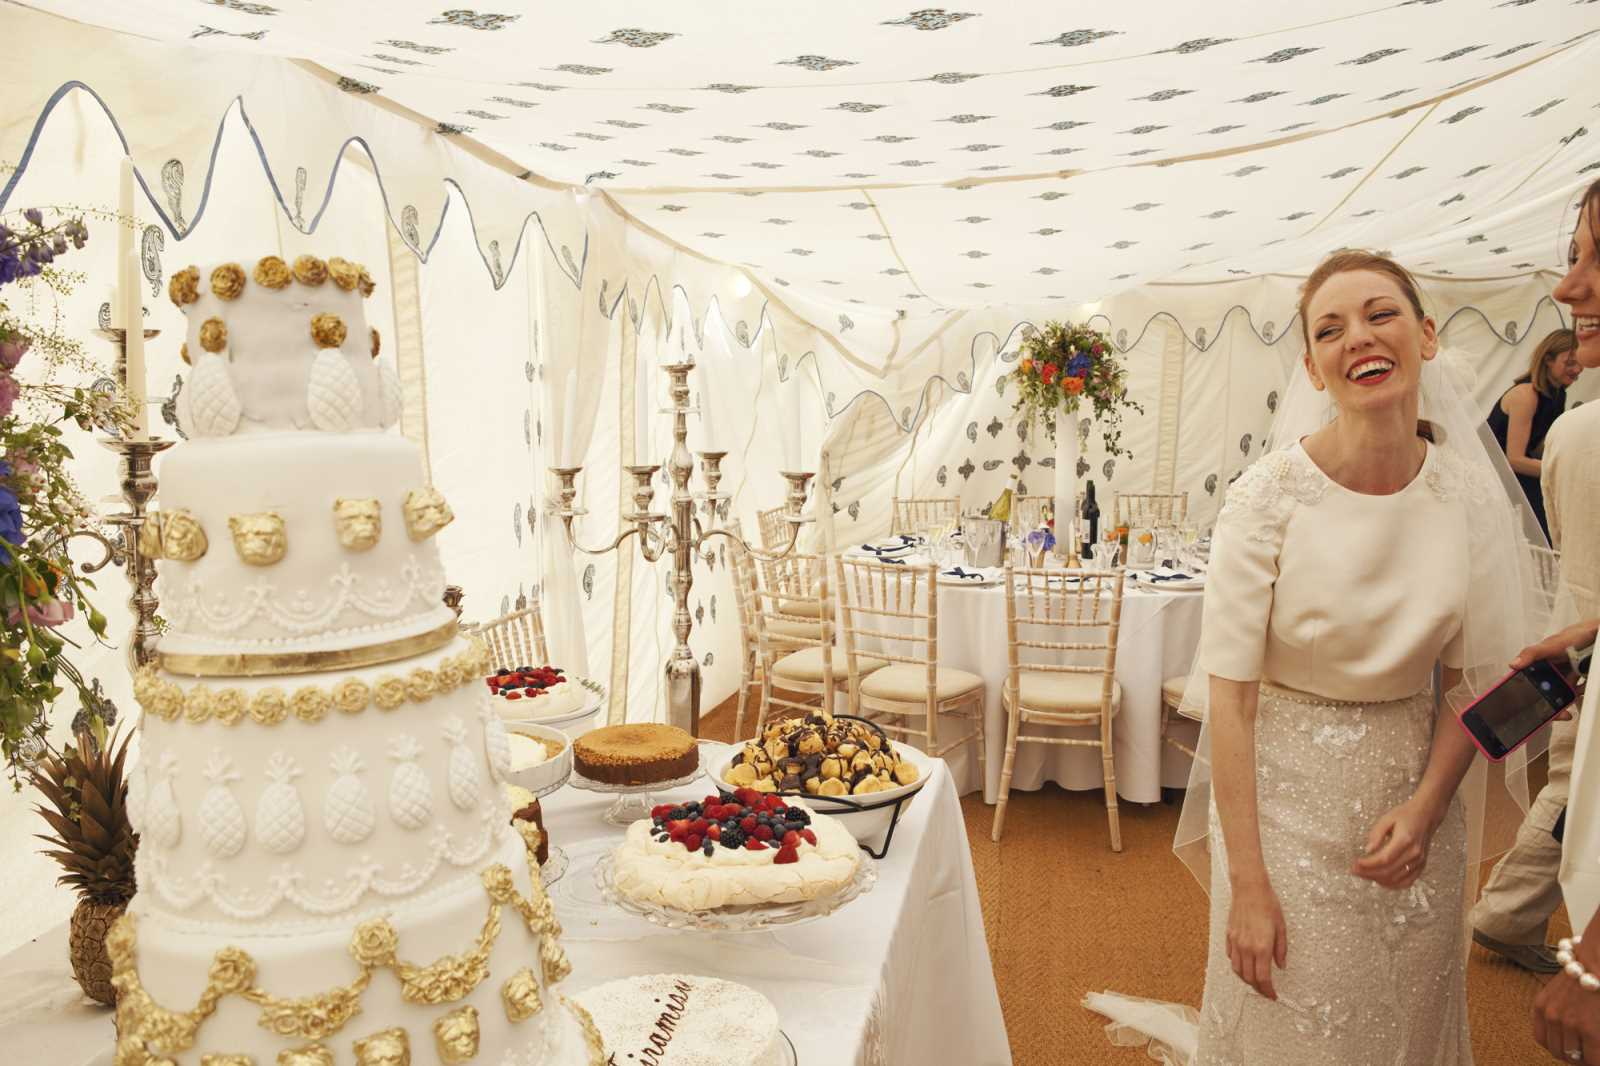 1920s Themed Party Ideas - The Arabian Tent Company